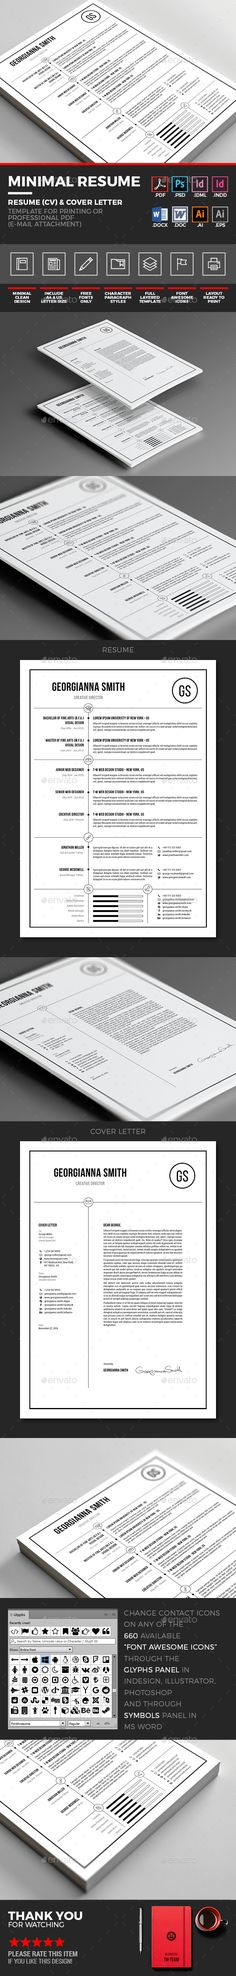 Resume u2014 Vector EPS #curriculum vitae #word cv u2022 Available here - is a cv a resume